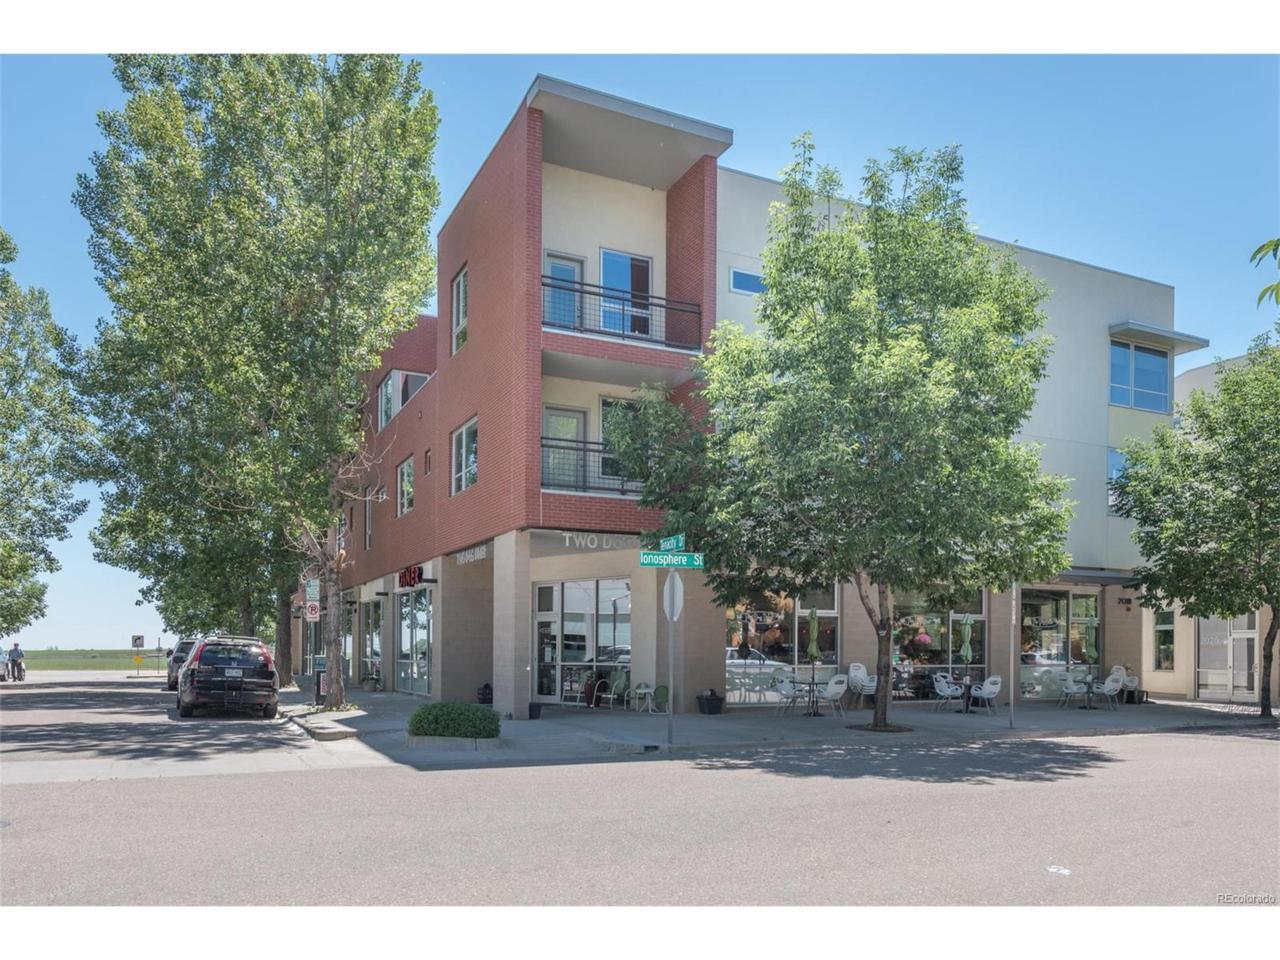 2018 Ionosphere Street #1, Longmont, CO 80504 (MLS #6811246) :: 8z Real Estate